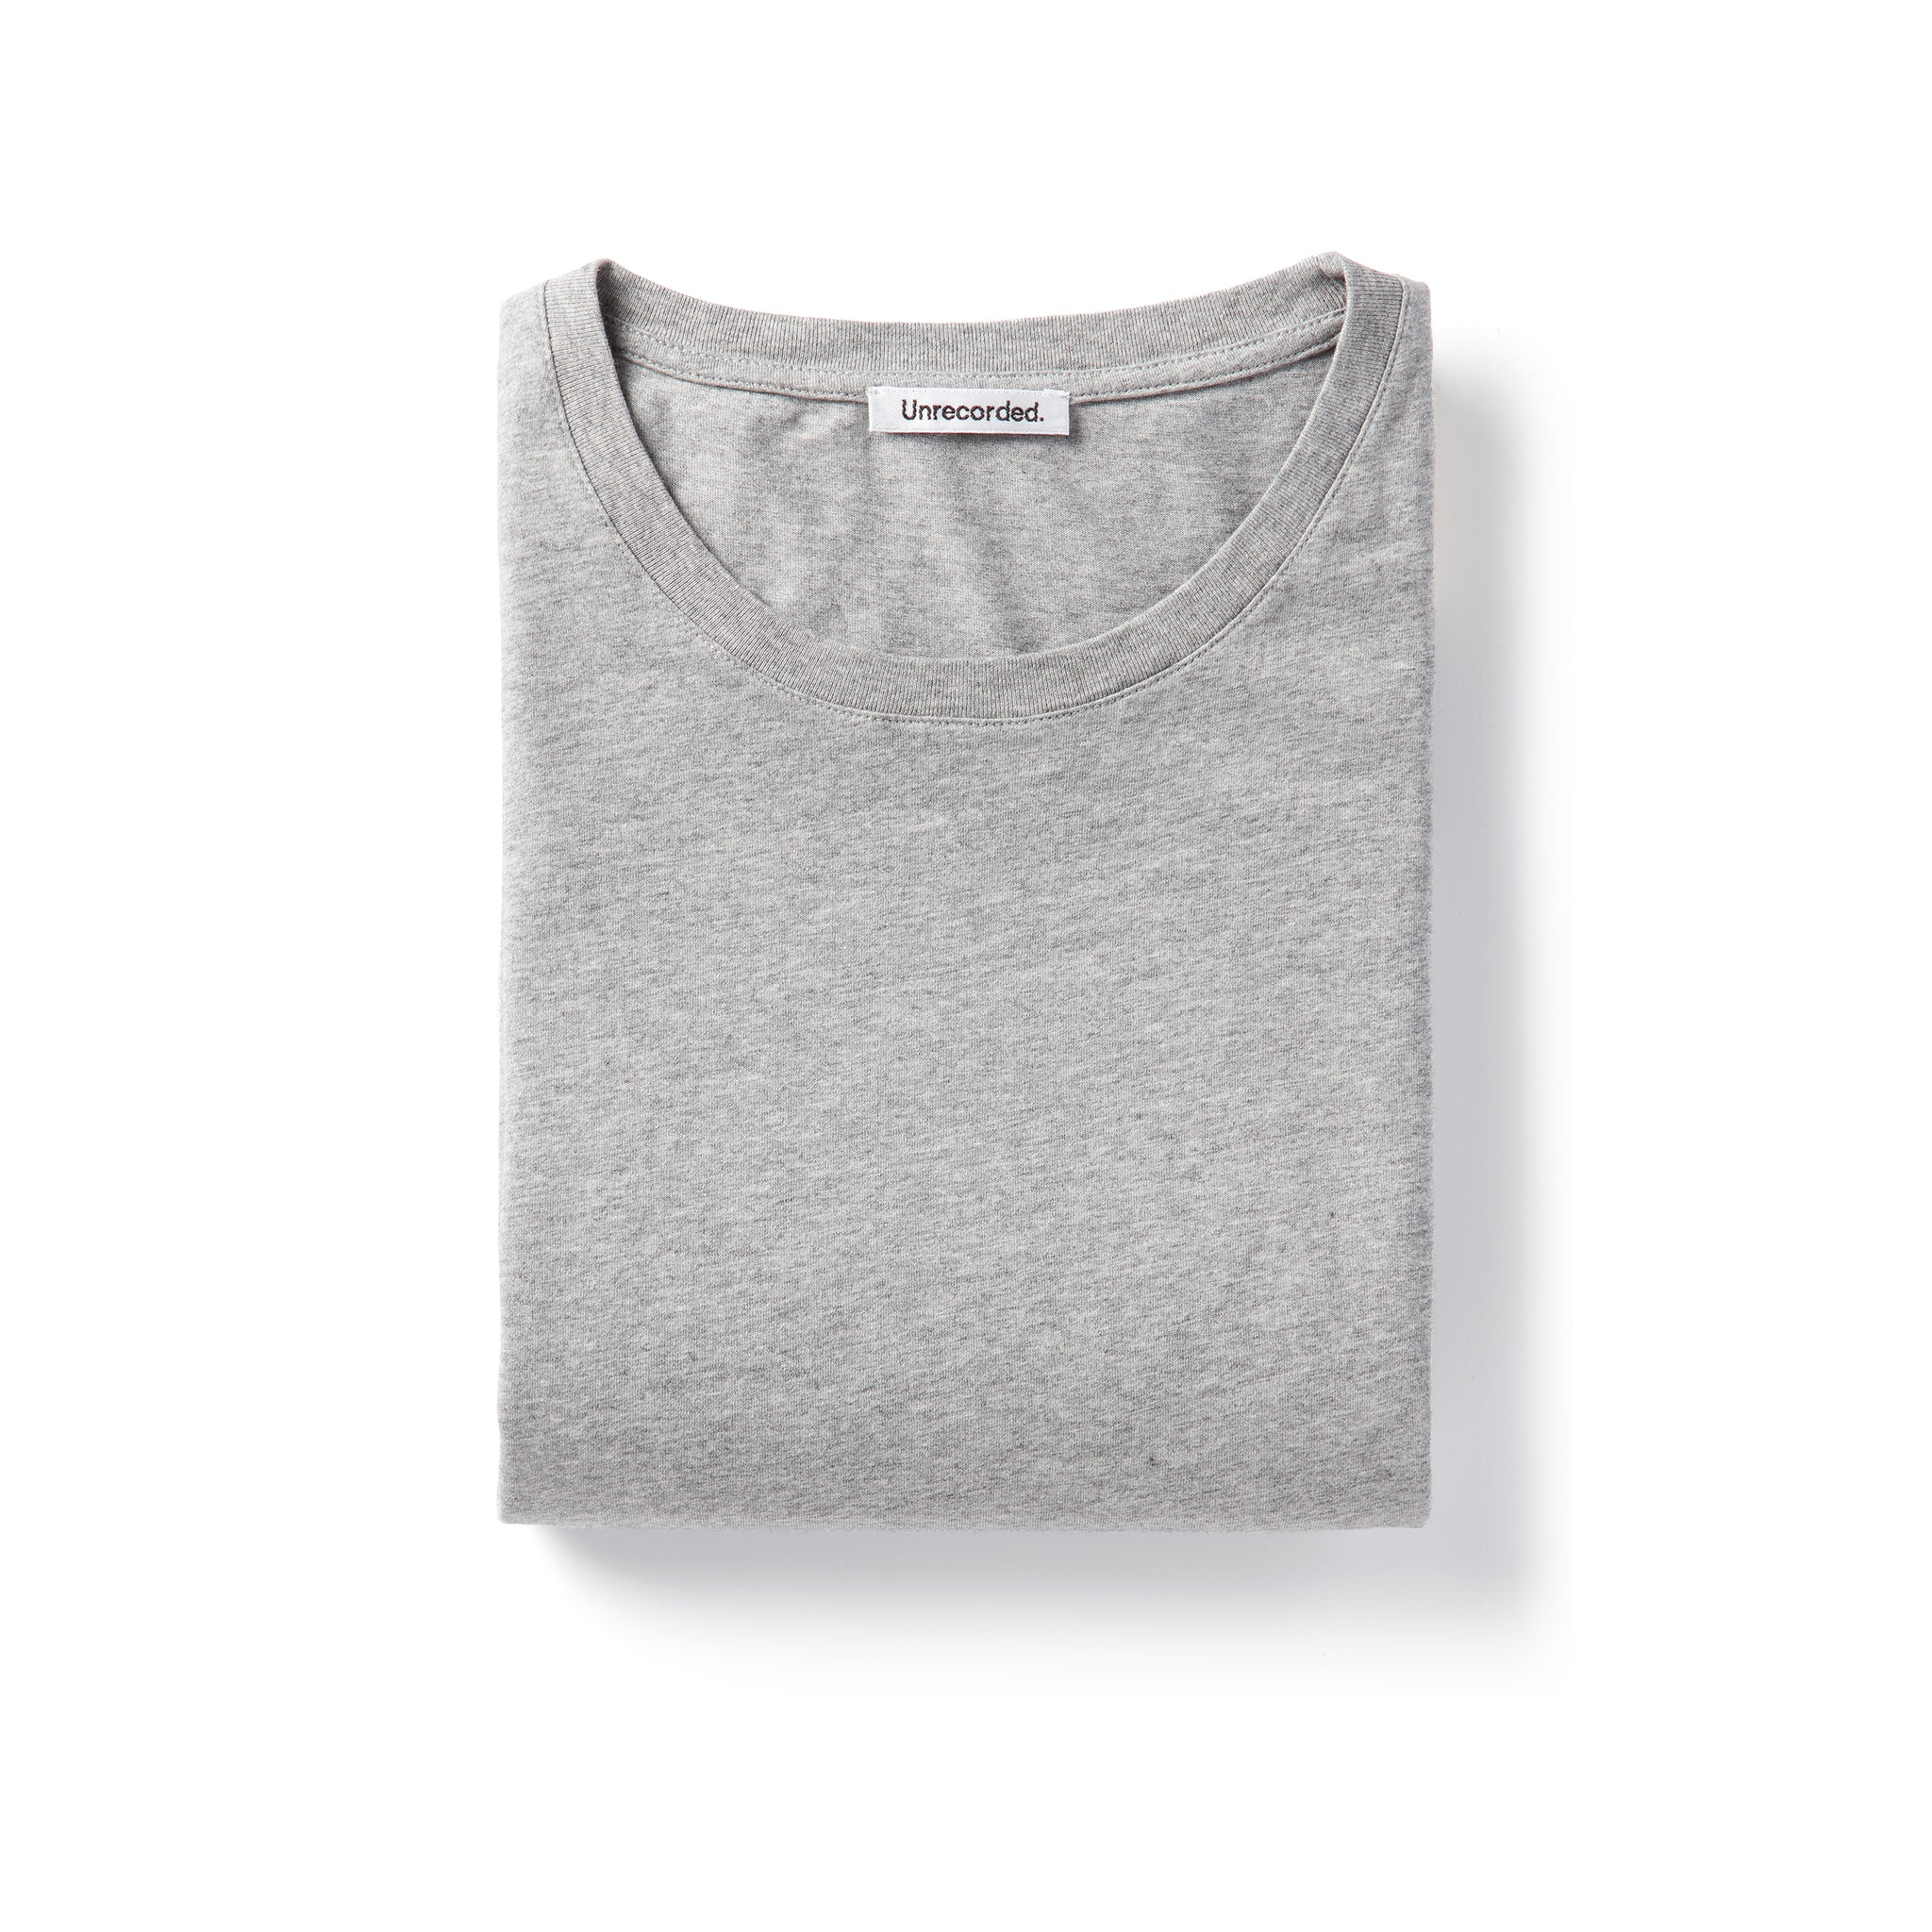 T-Shirt 155 GSM Grey - Unrecorded